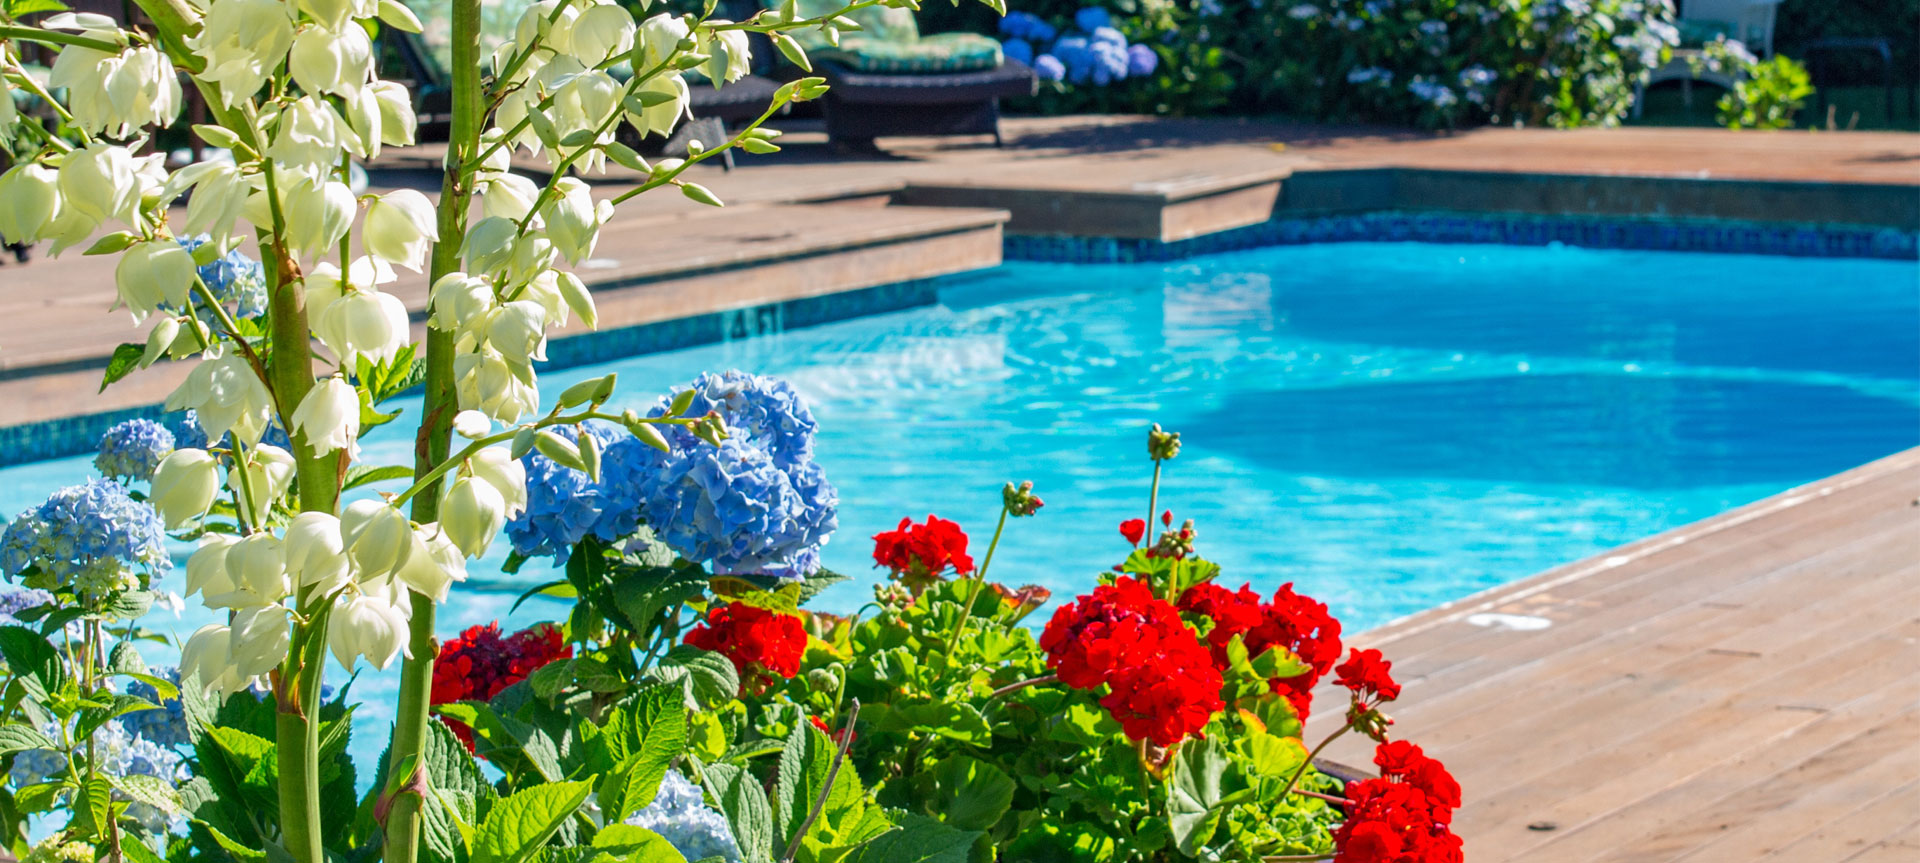 Flowers with Pool | Brewster By the Sea Cape Cod Inn | Brewster, MA